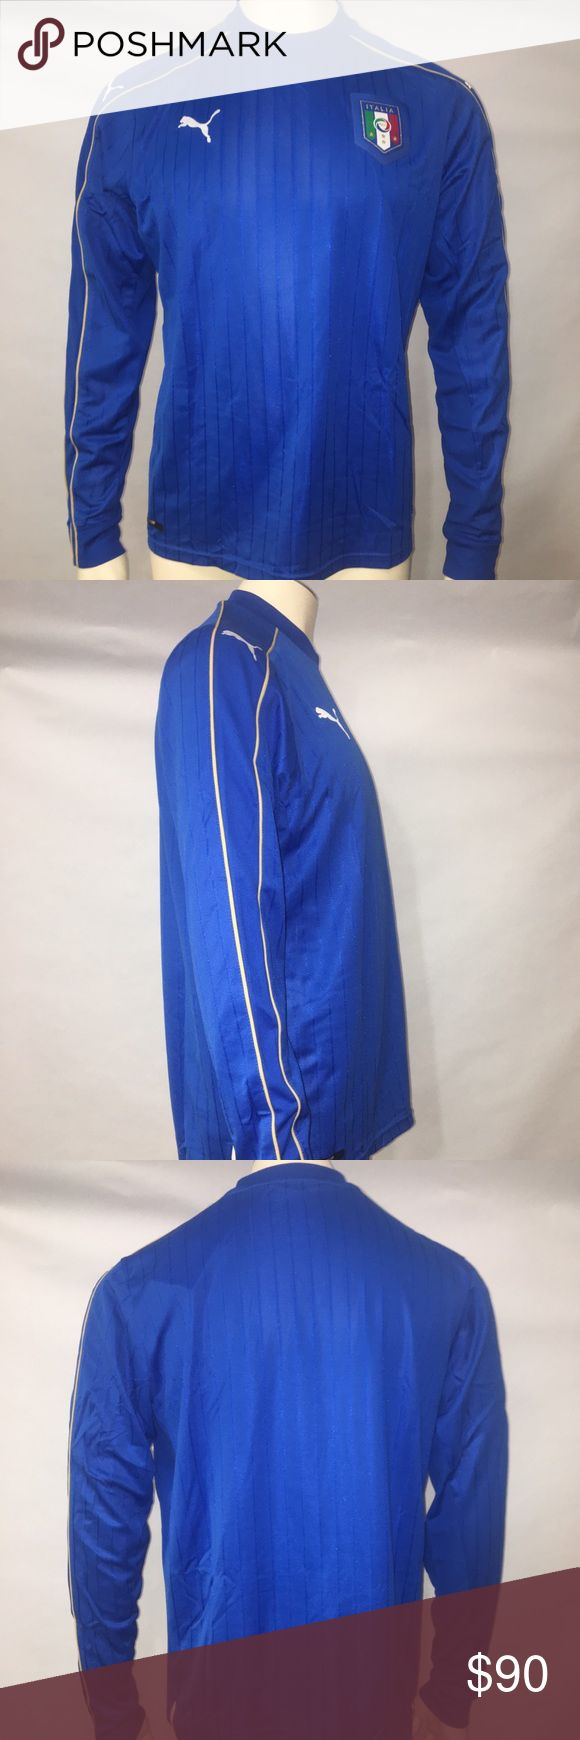 Puma L Blue FIGC Italia Home Replica Shirt New With Tags Good Condition See Pictures For Details. Puma L Blue FIGC Italia Home Replica Shirt. J006 Puma Shirts Tees - Long Sleeve